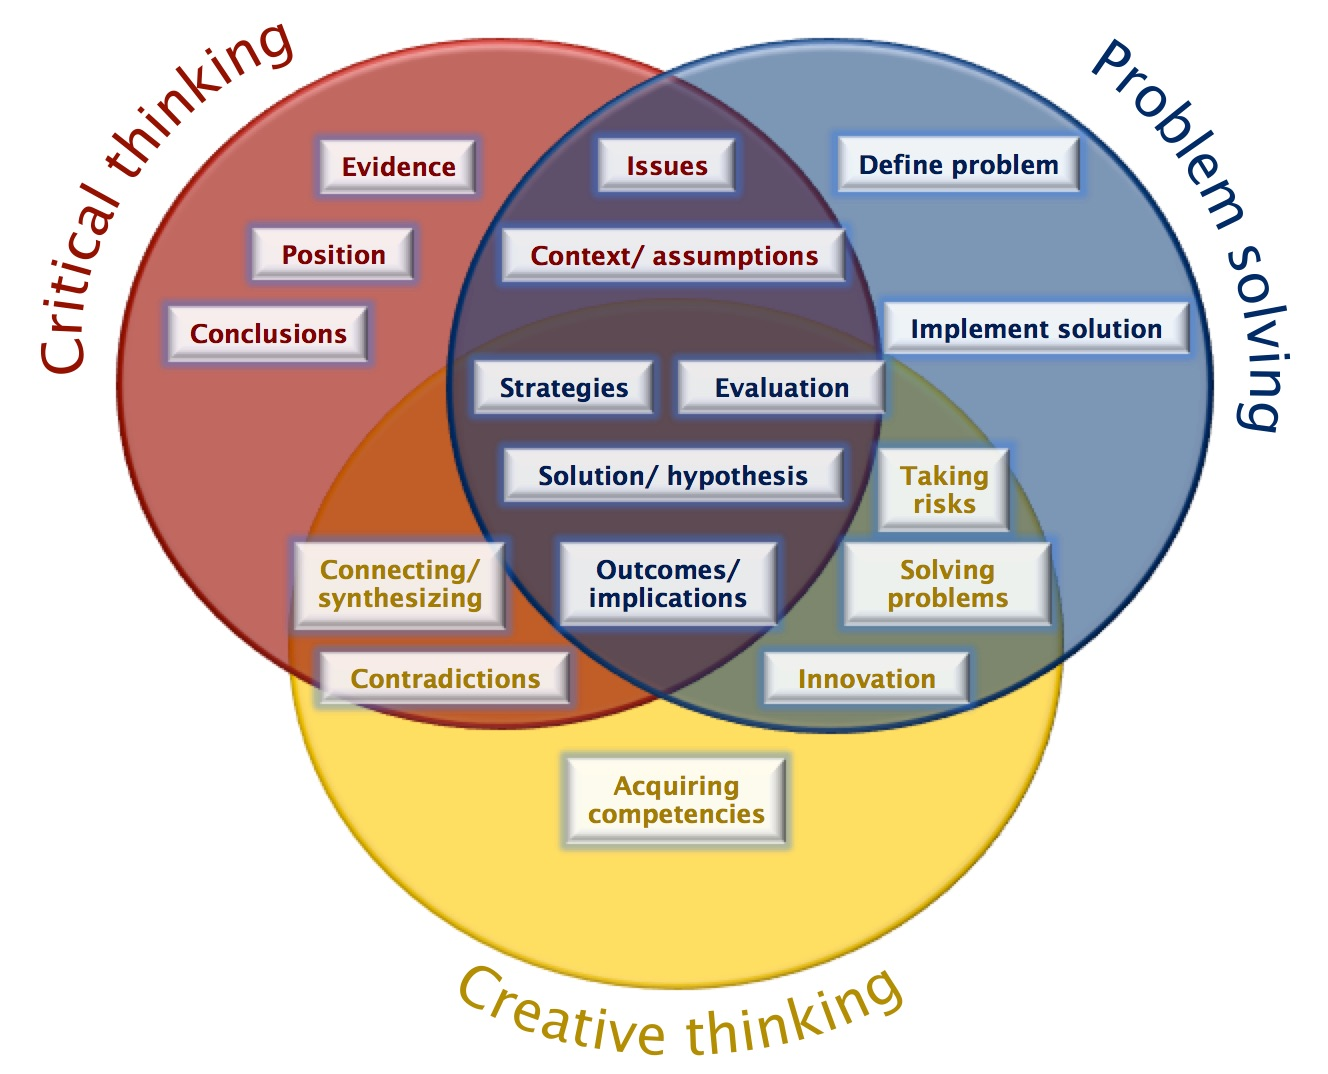 what is critical thinking and problem solving skills How to think critically and problem solve by z hereford  we can view them as opportunities to hone our critical thinking and problem-solving skills.